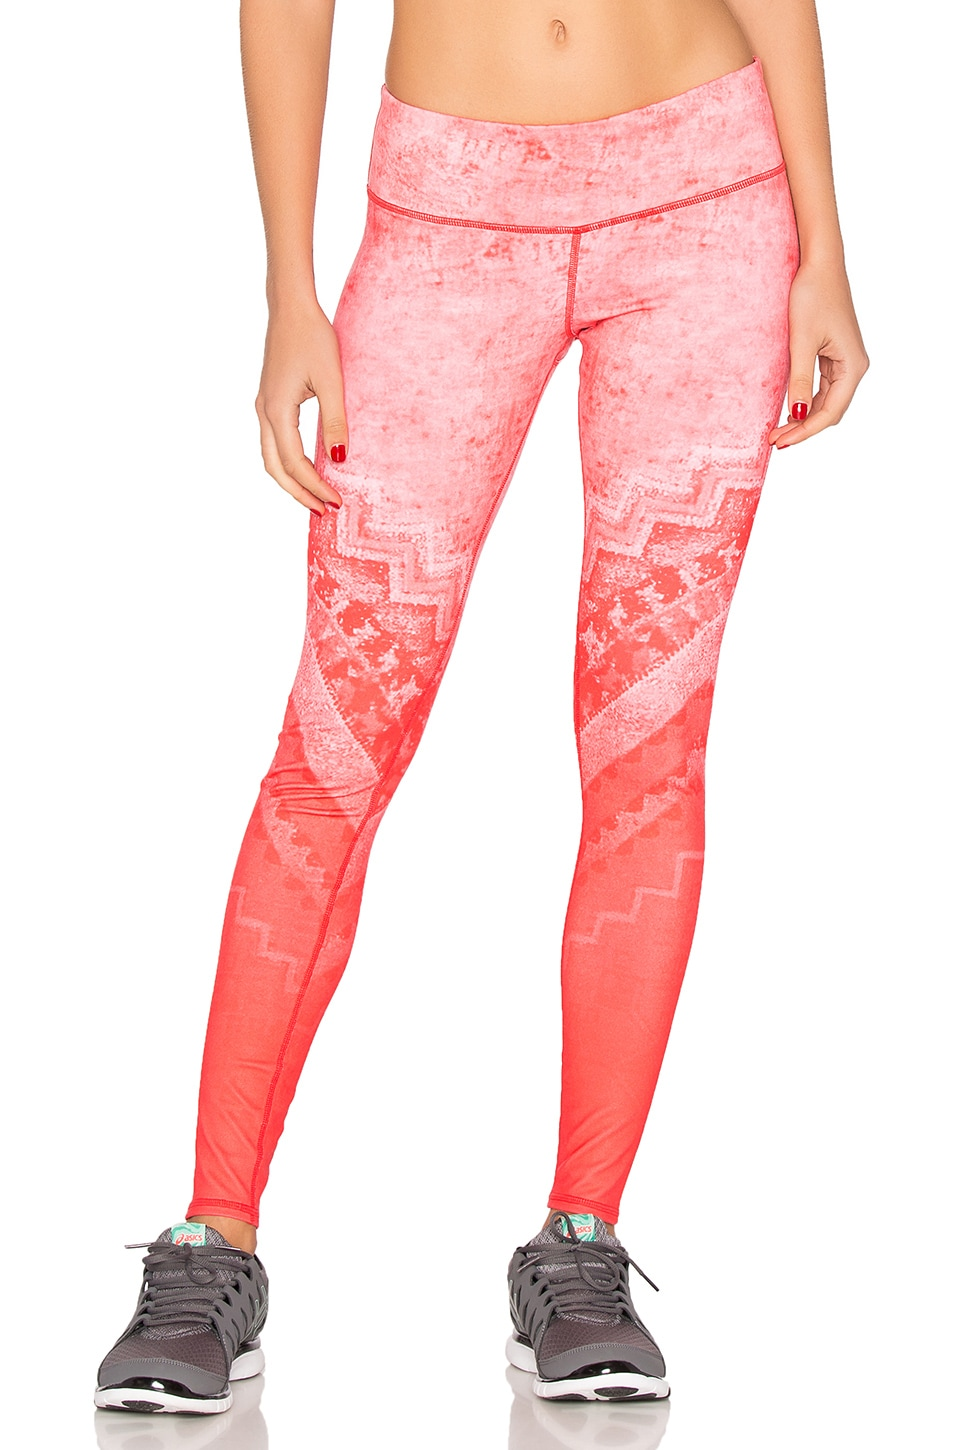 Airbrush Legging by alo